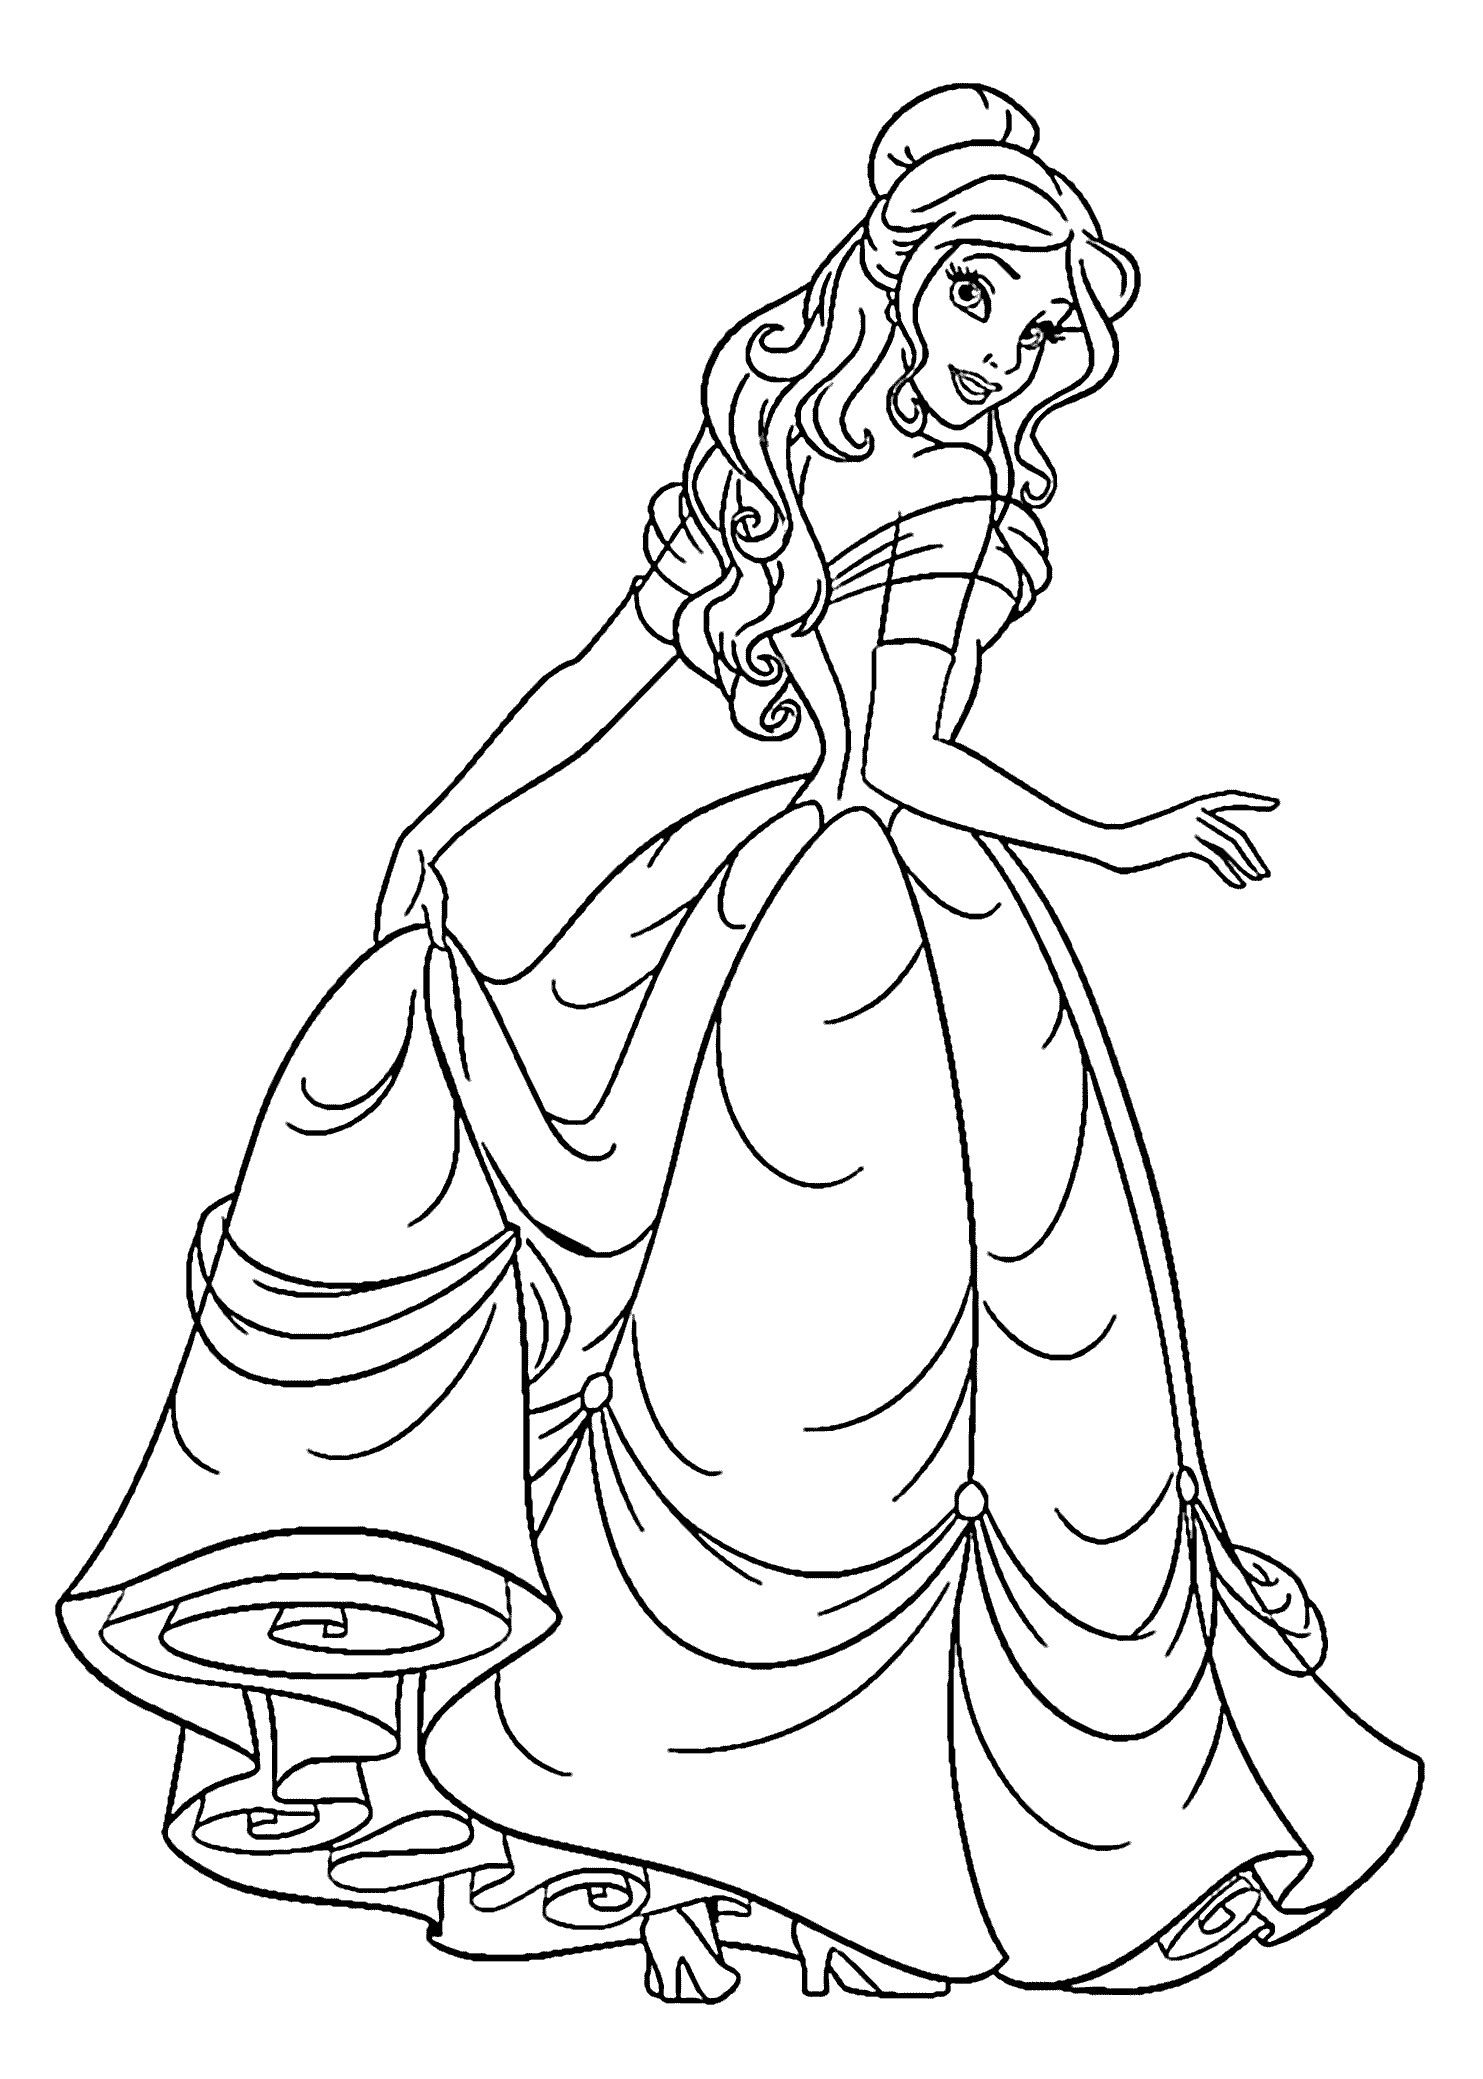 paper bag princess characters coloring pages | Paper Bag Princess Coloring Page – Through the thousands ...